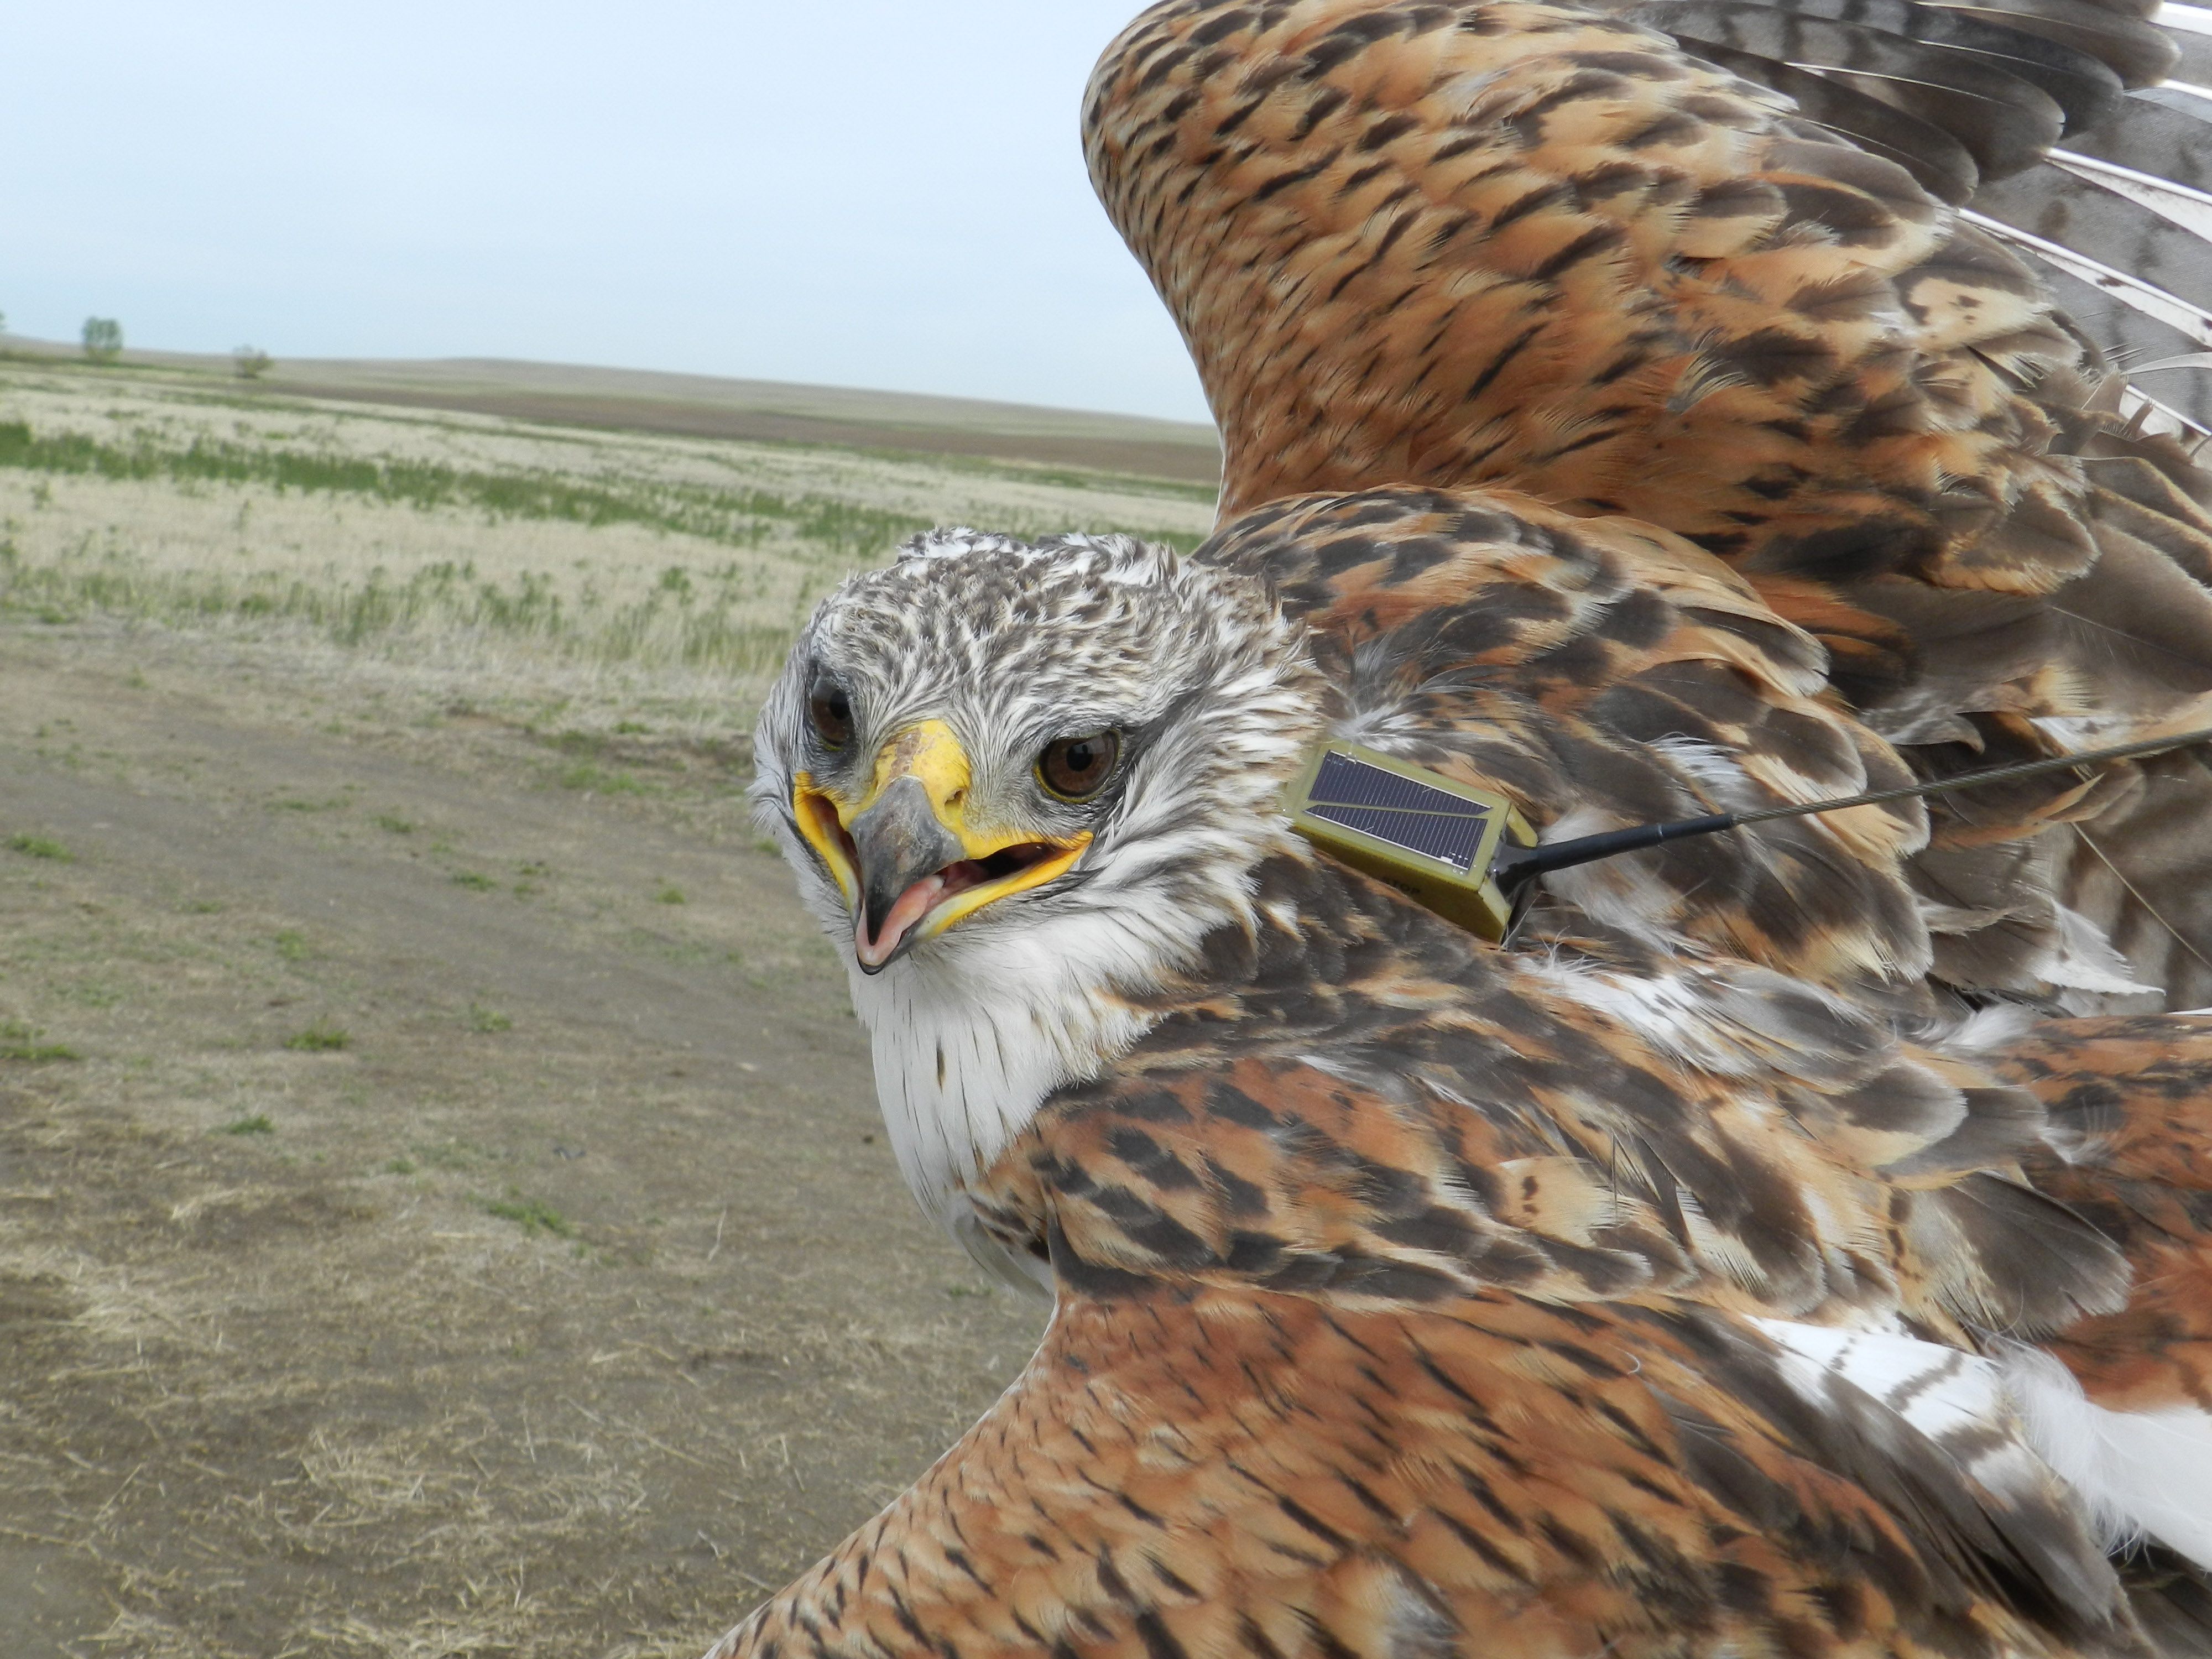 An adult Ferruginous Hawk equipped with a satellite transmitter backpack